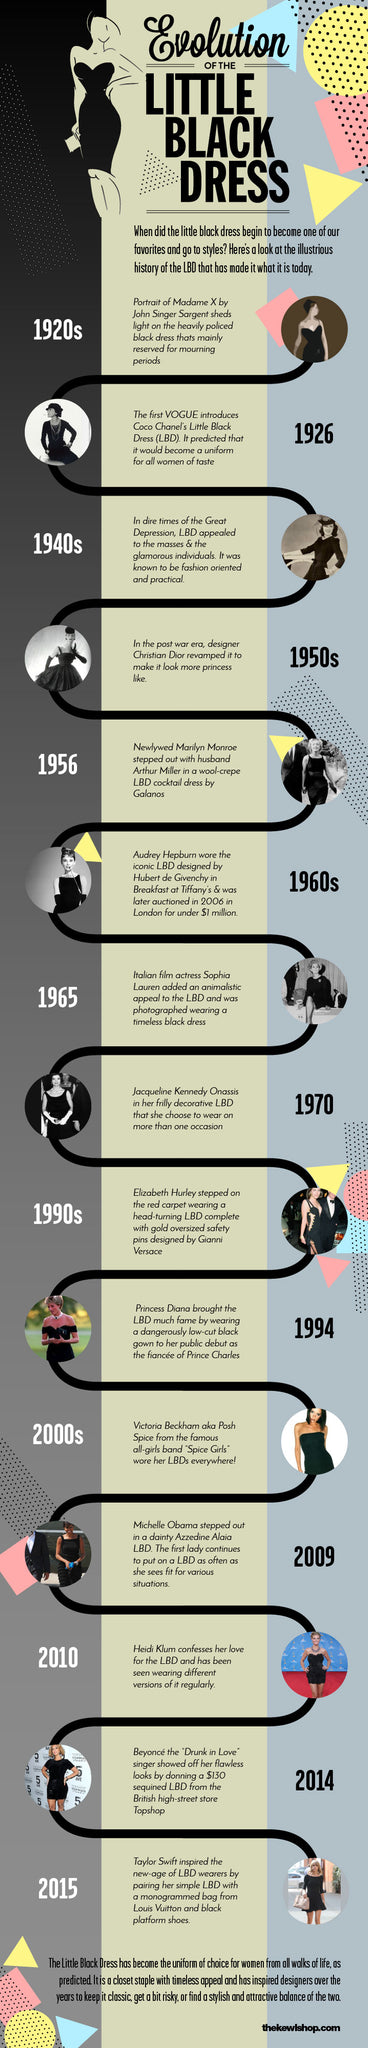 infographic - evolution of little black dress